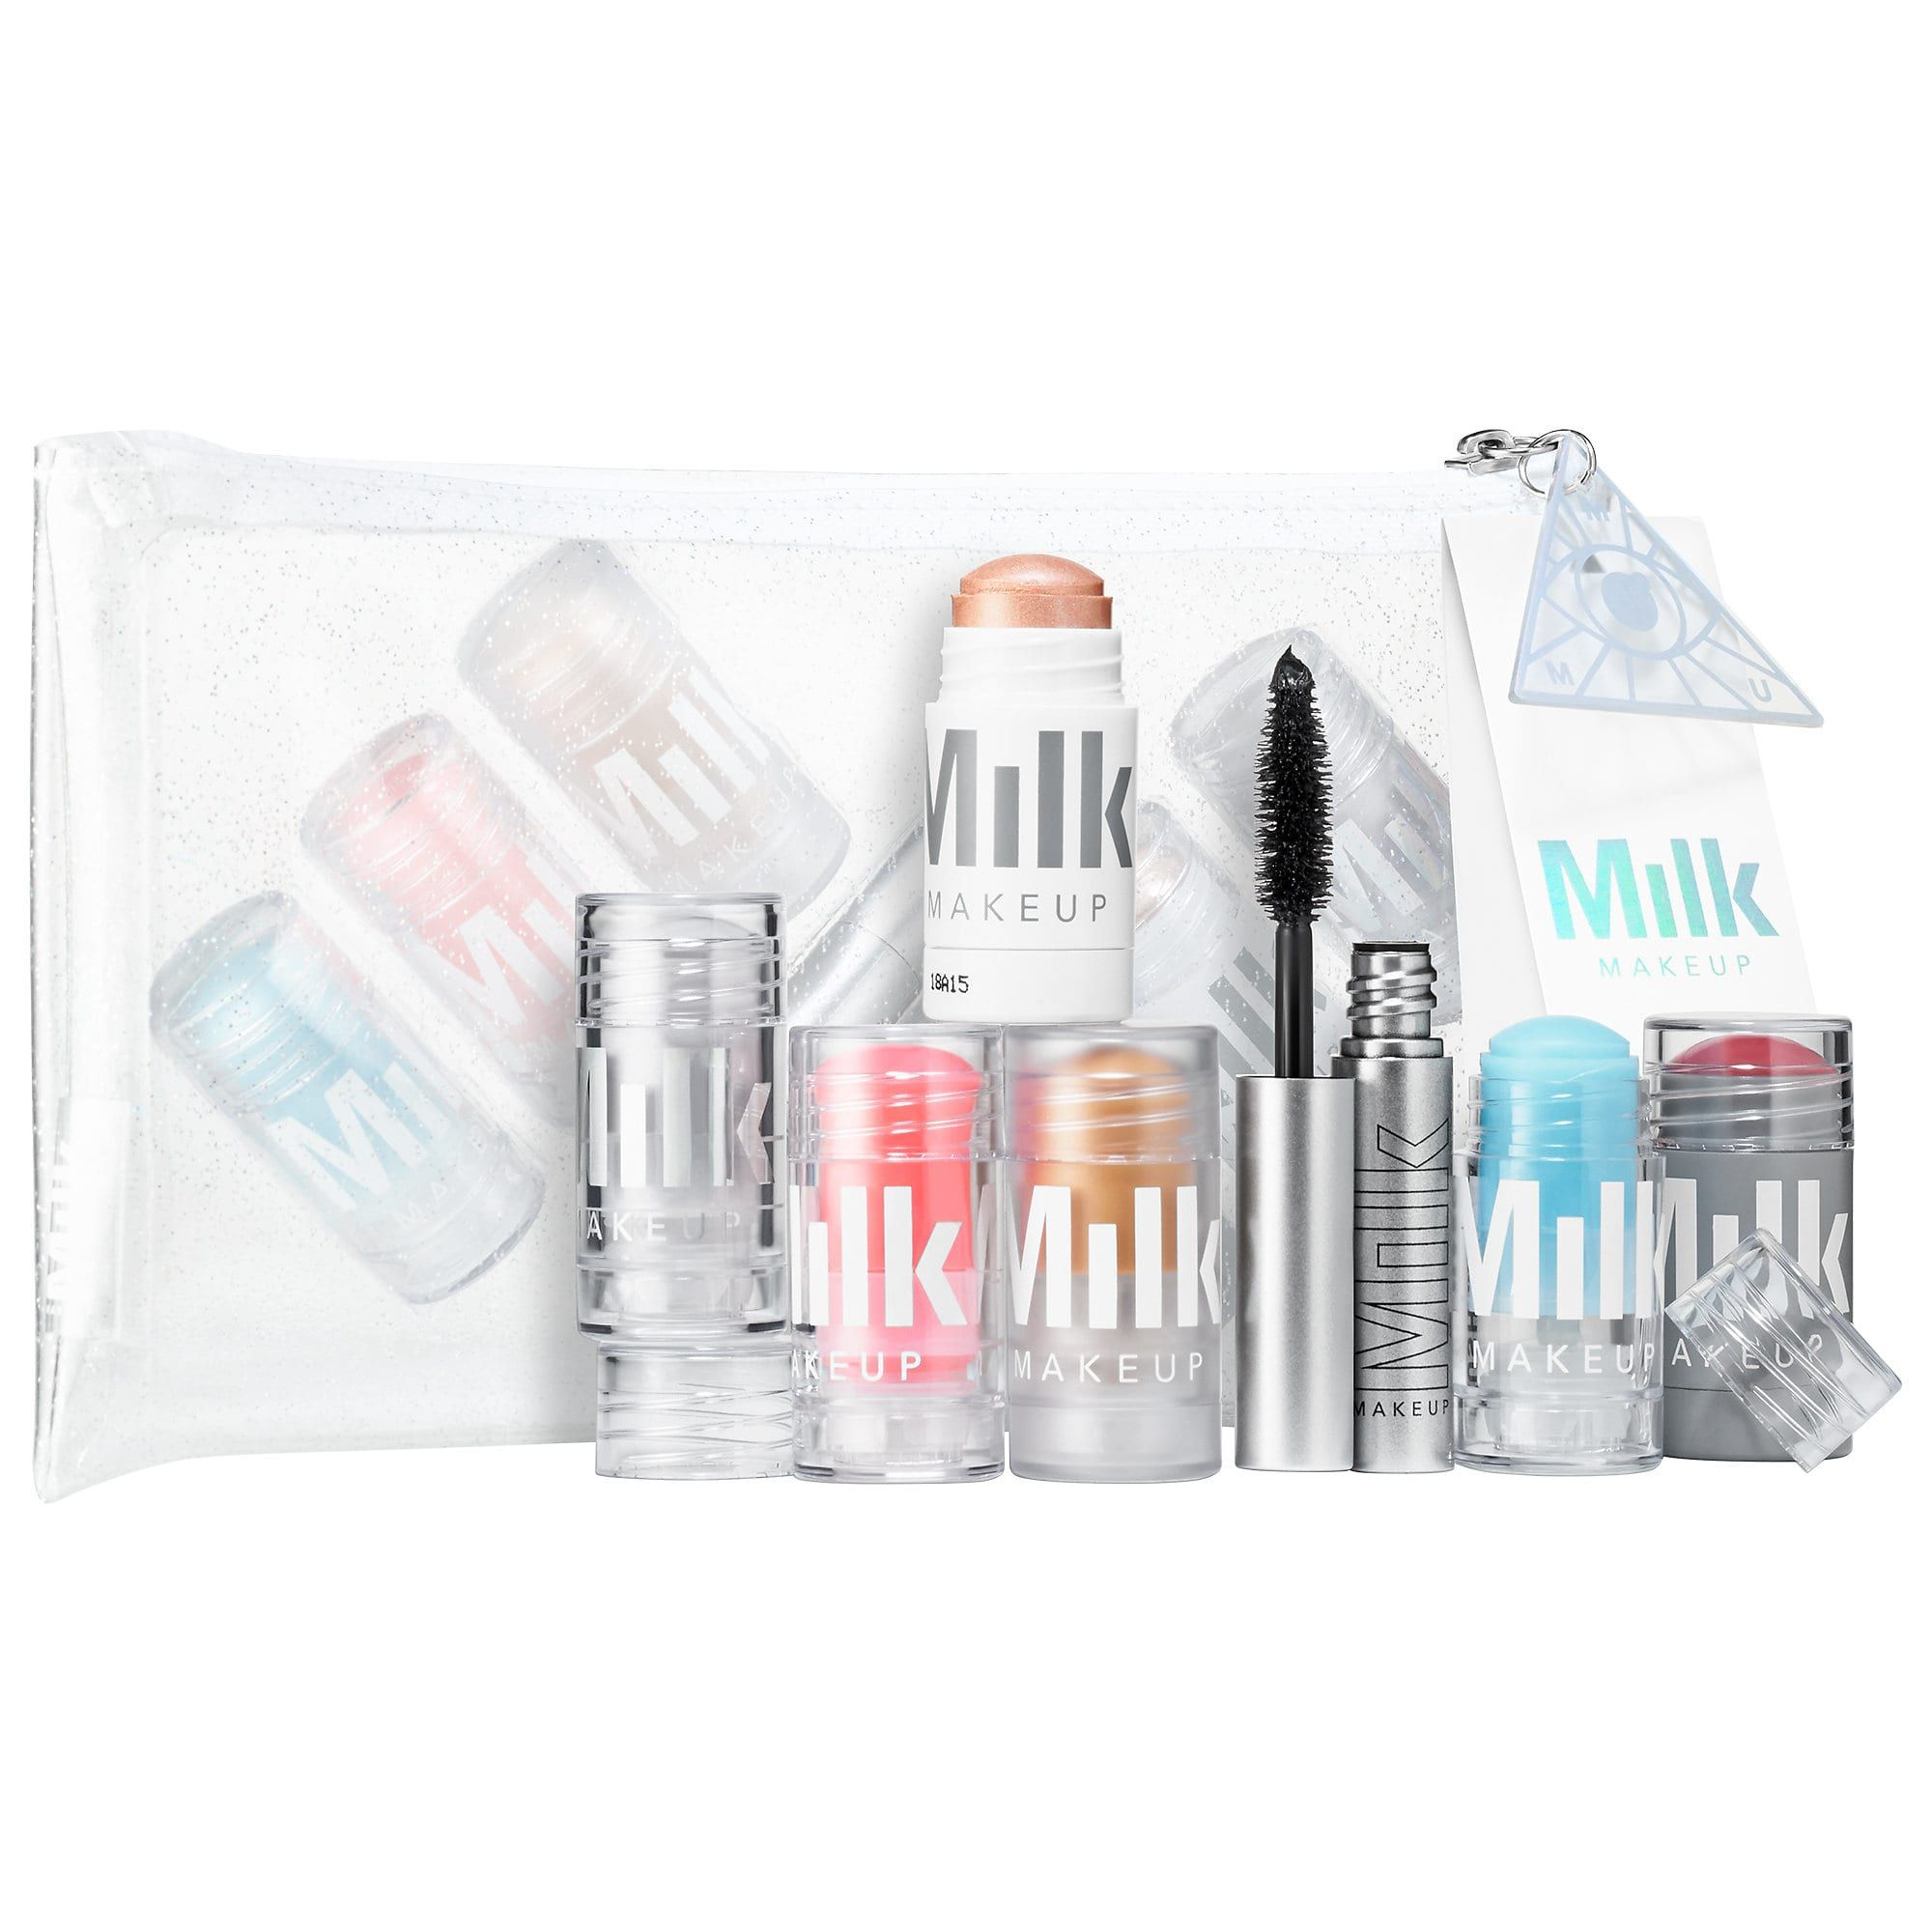 Meet The Fam Milk Bestsellers Set MILK MAKEUP Sephora